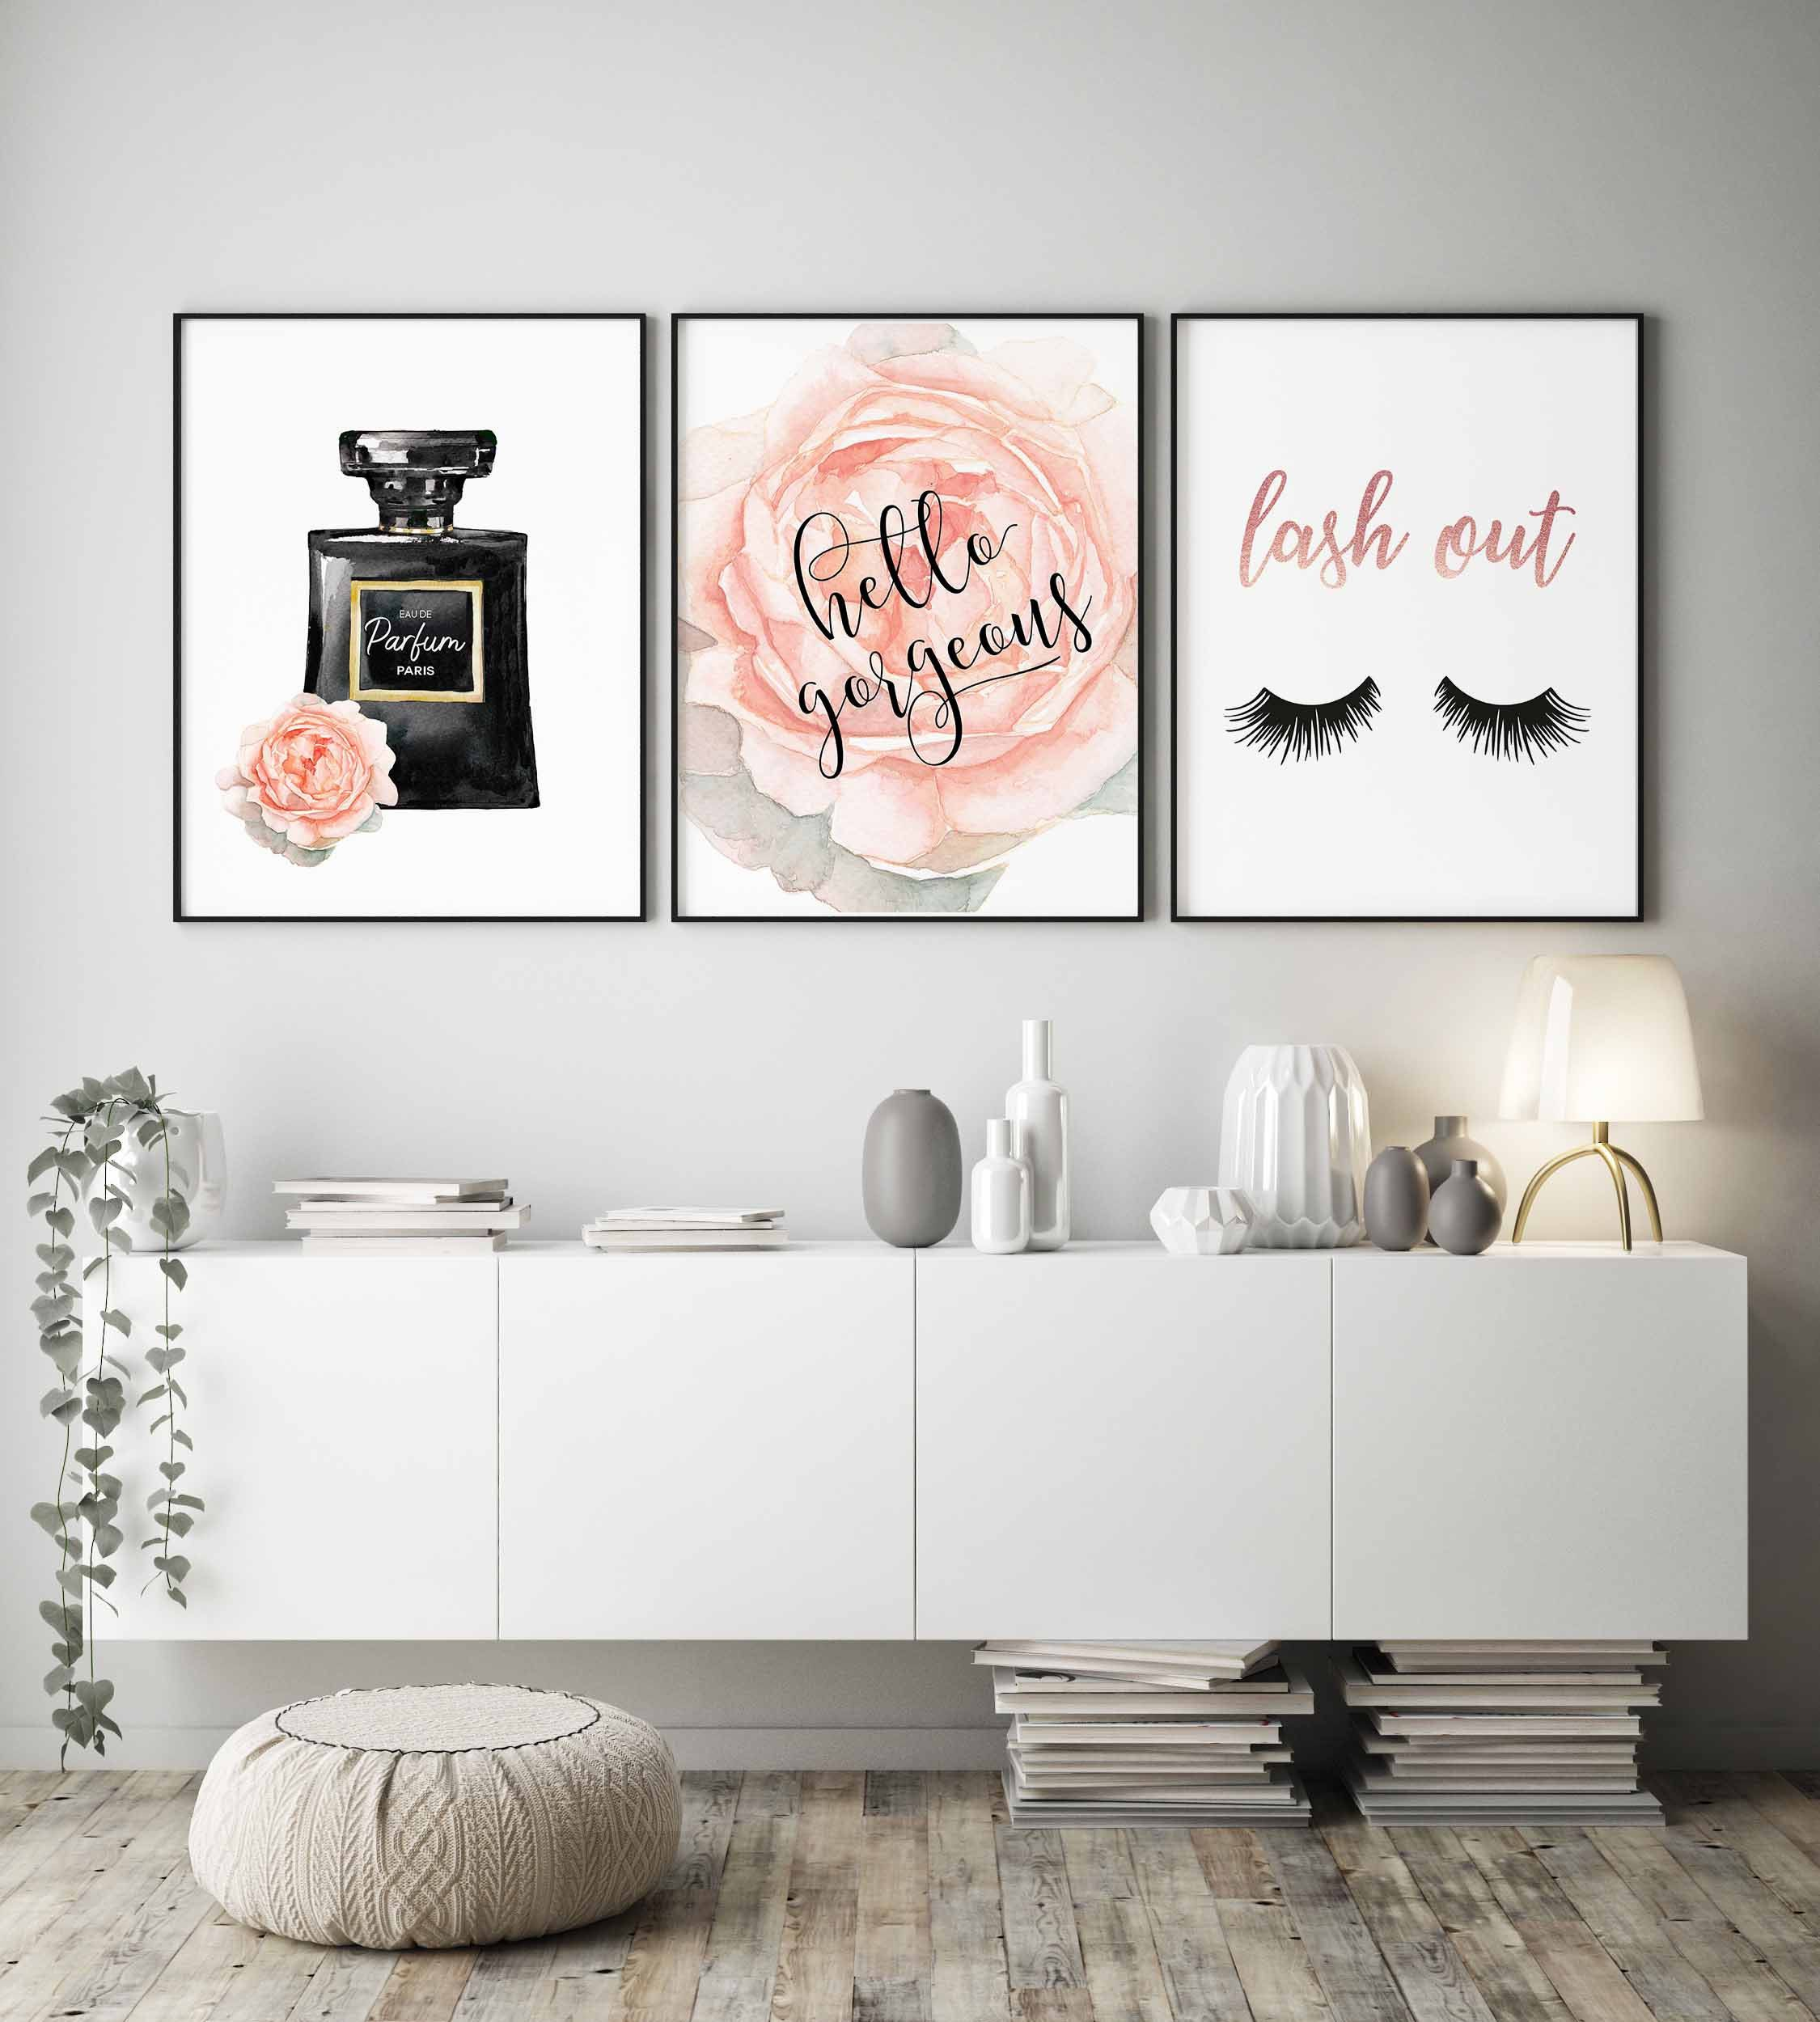 Hello gorgeous print,Lash out sign,Perfume bottle,Fashion wall art,Watercolor rose print,Beauty printables,Lashes print,girls bedroom decor